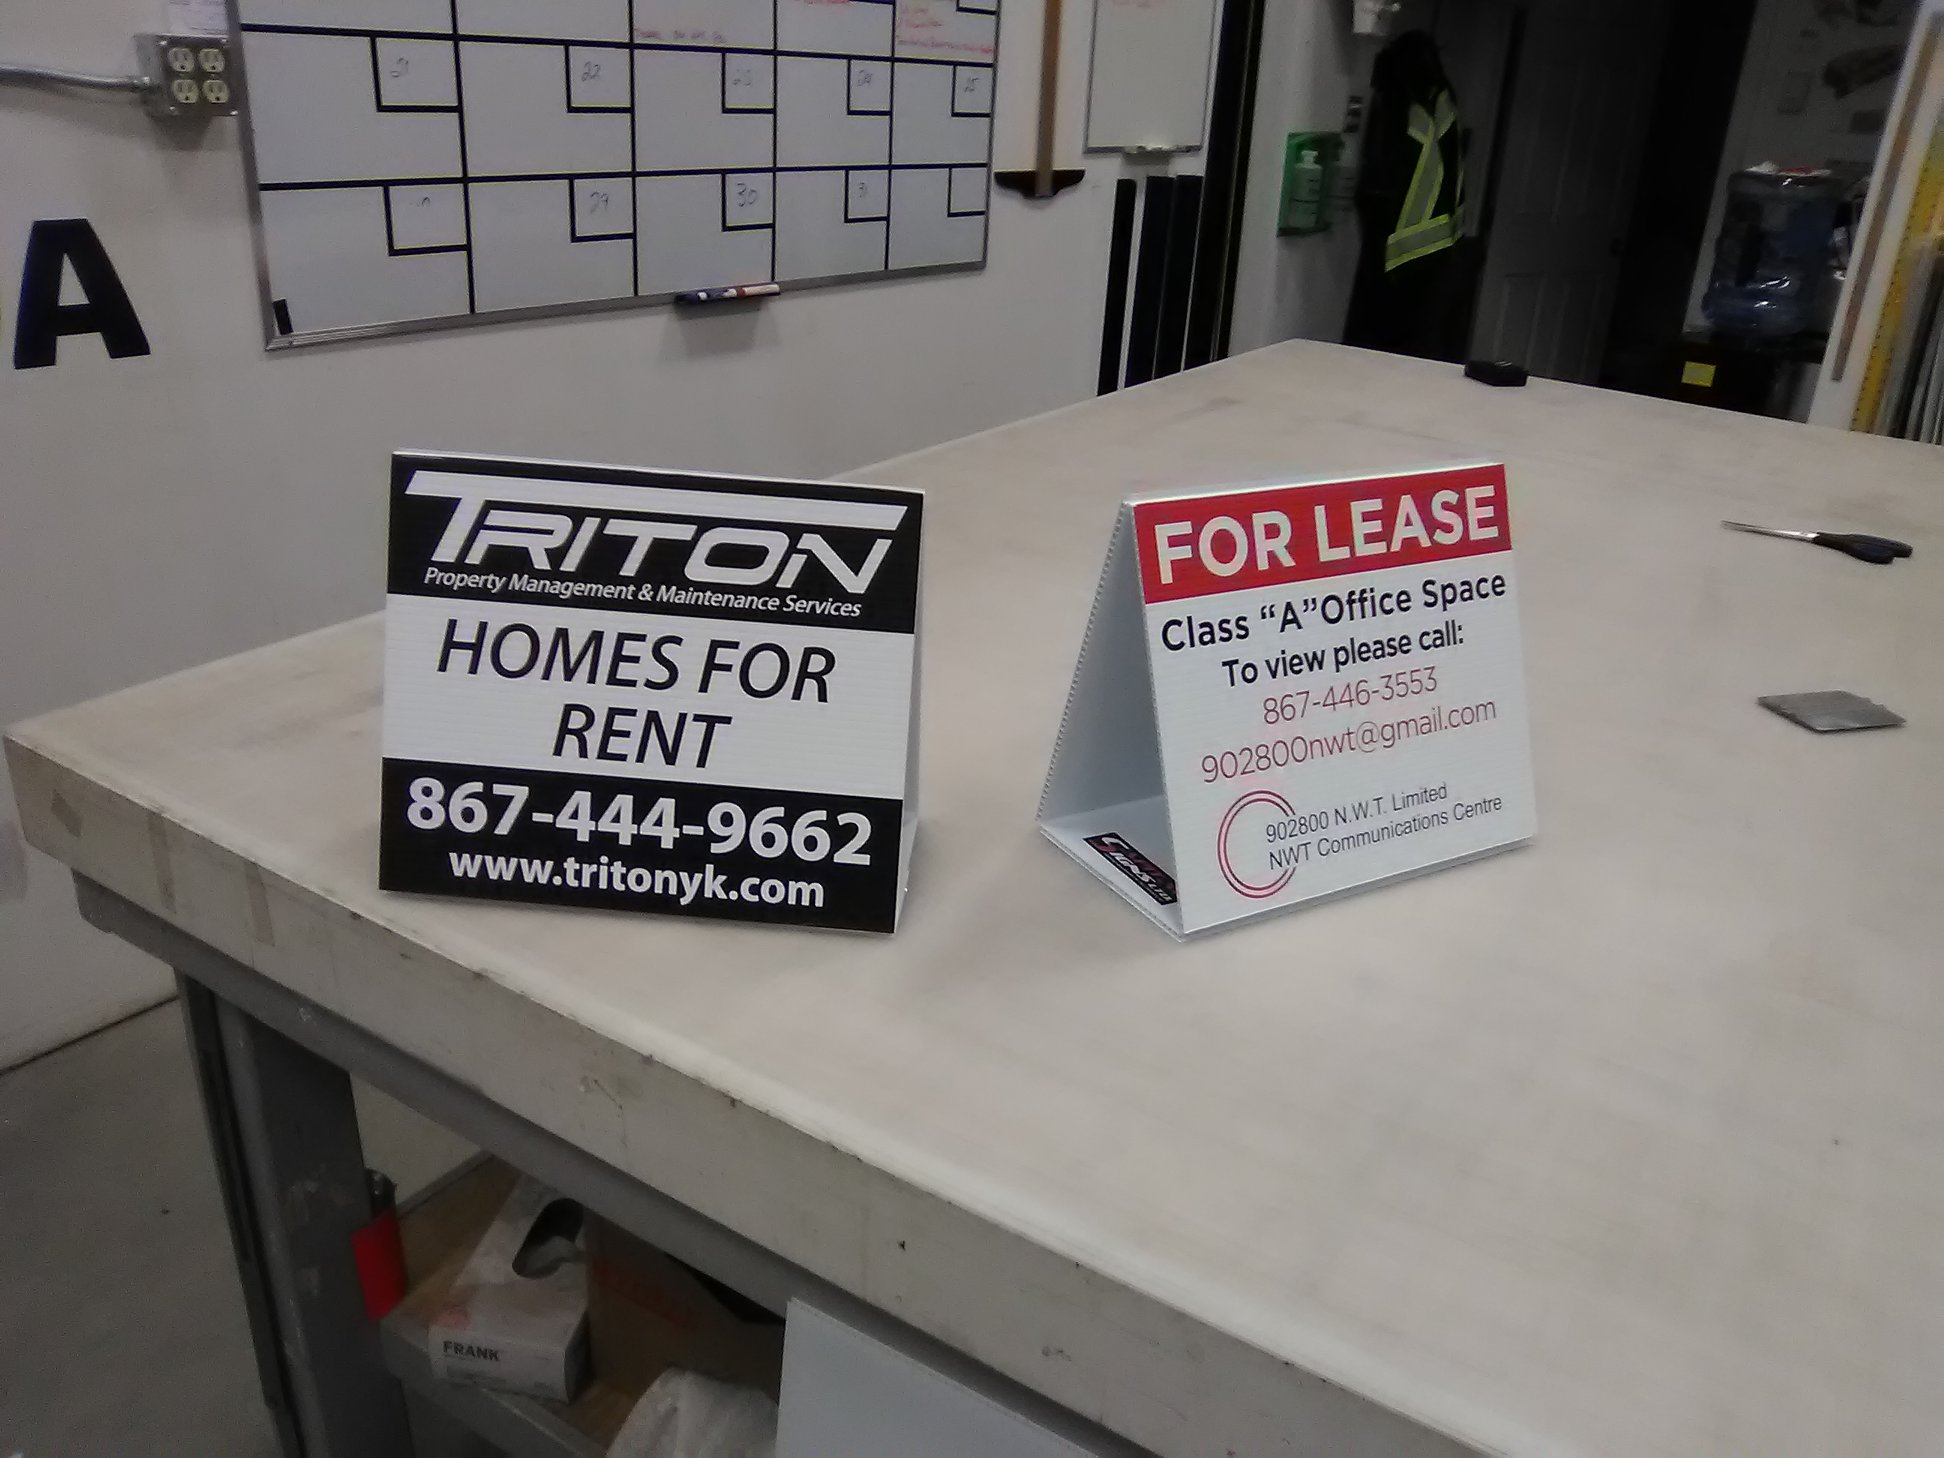 Signage for Triton Property Management & Maintenance Services